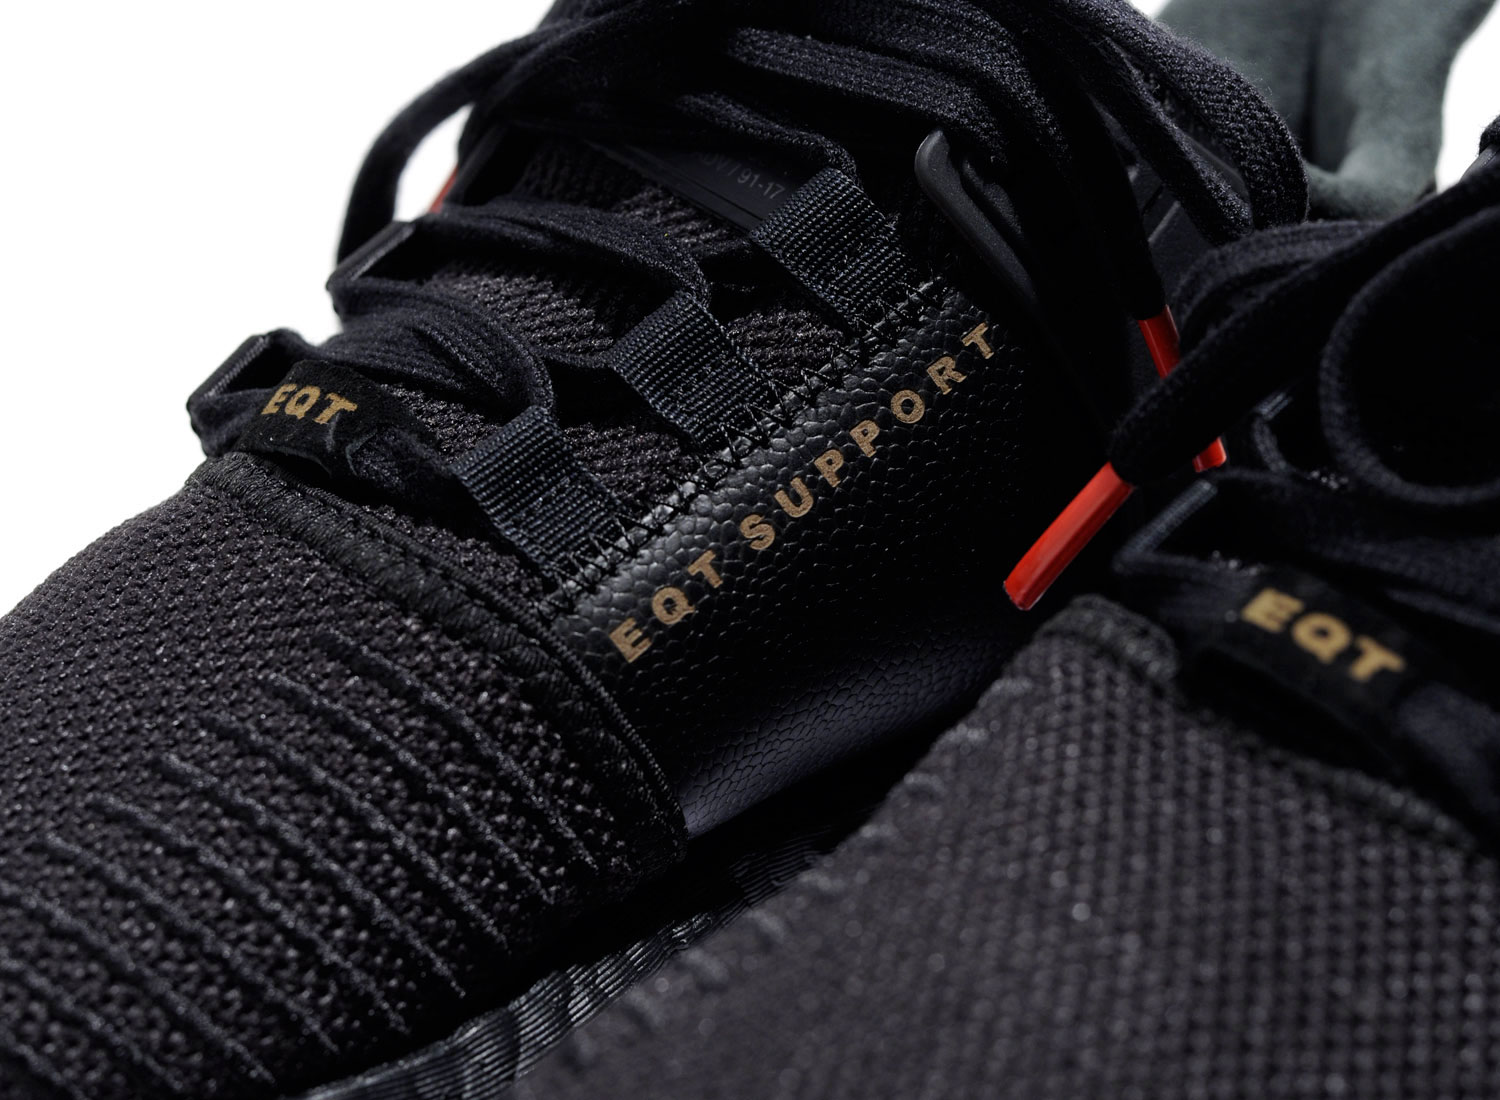 sneakers for cheap 4e7de ed415 ... Worldwide Online Retailer List Adidas EQT Support 9317 Core Black Red  CQ2394 Soldes Novo ...